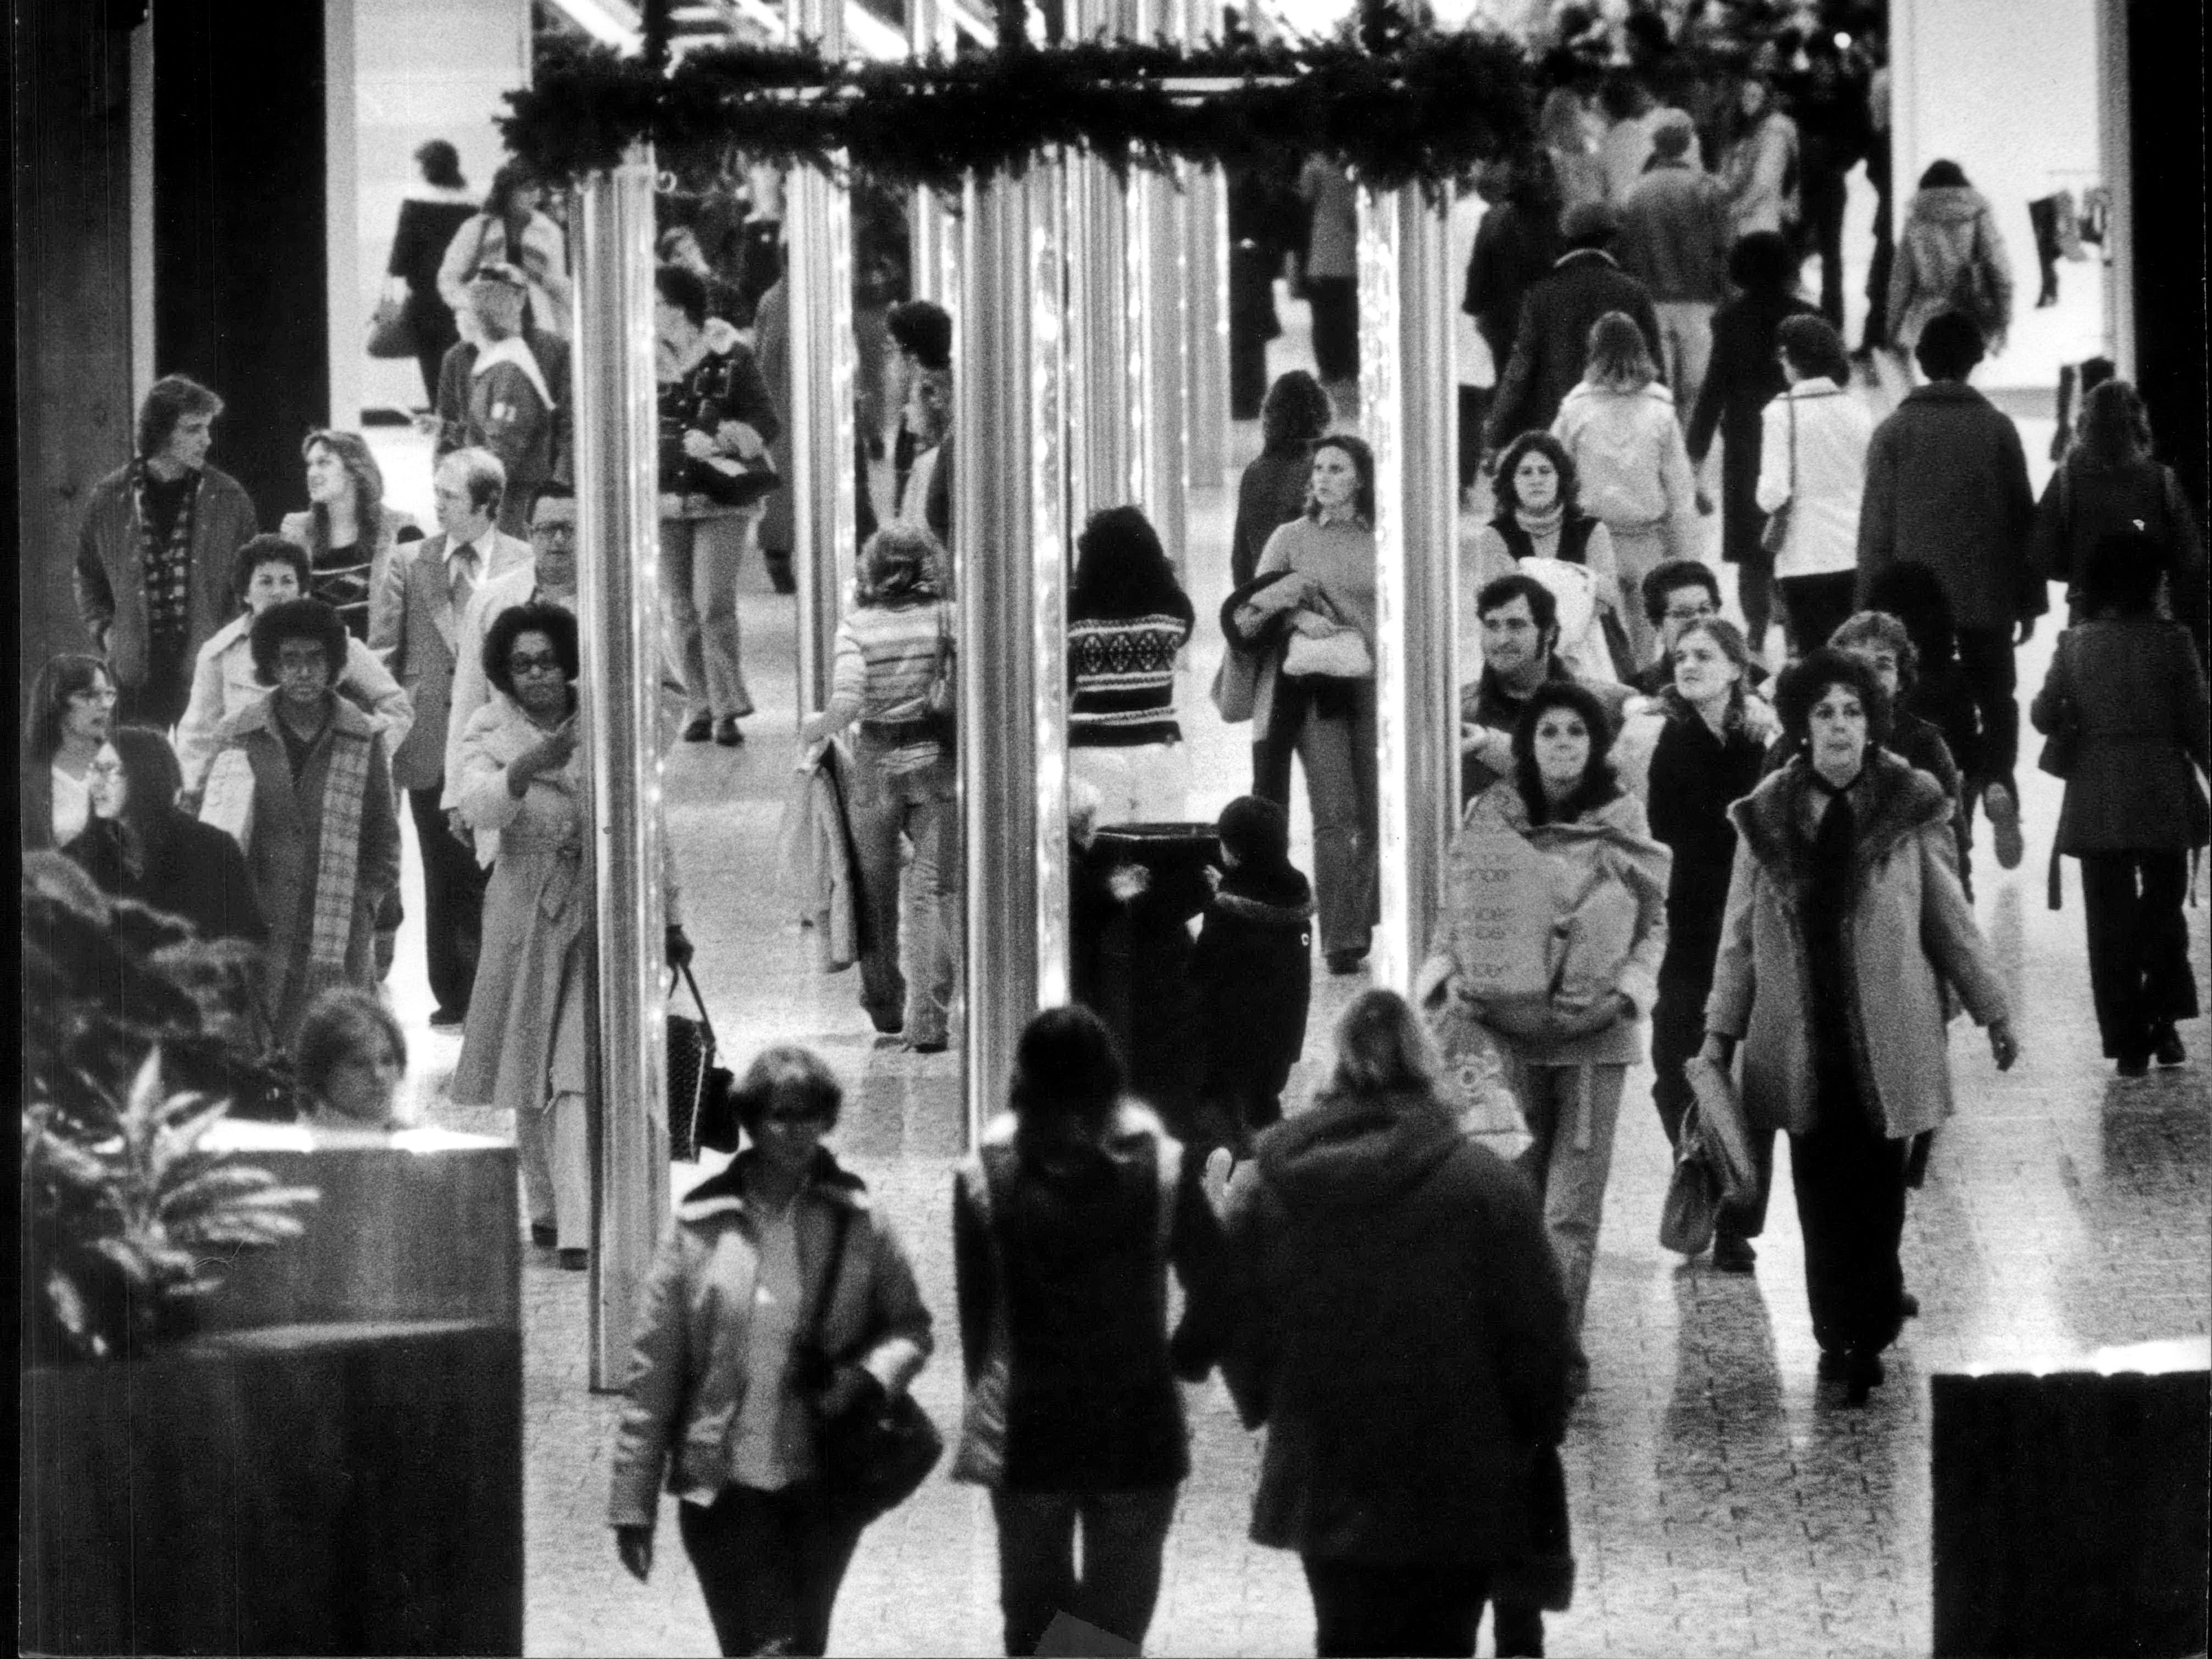 November 1979: Customers packed Northridge as the Christmas shopping season went into high gear.